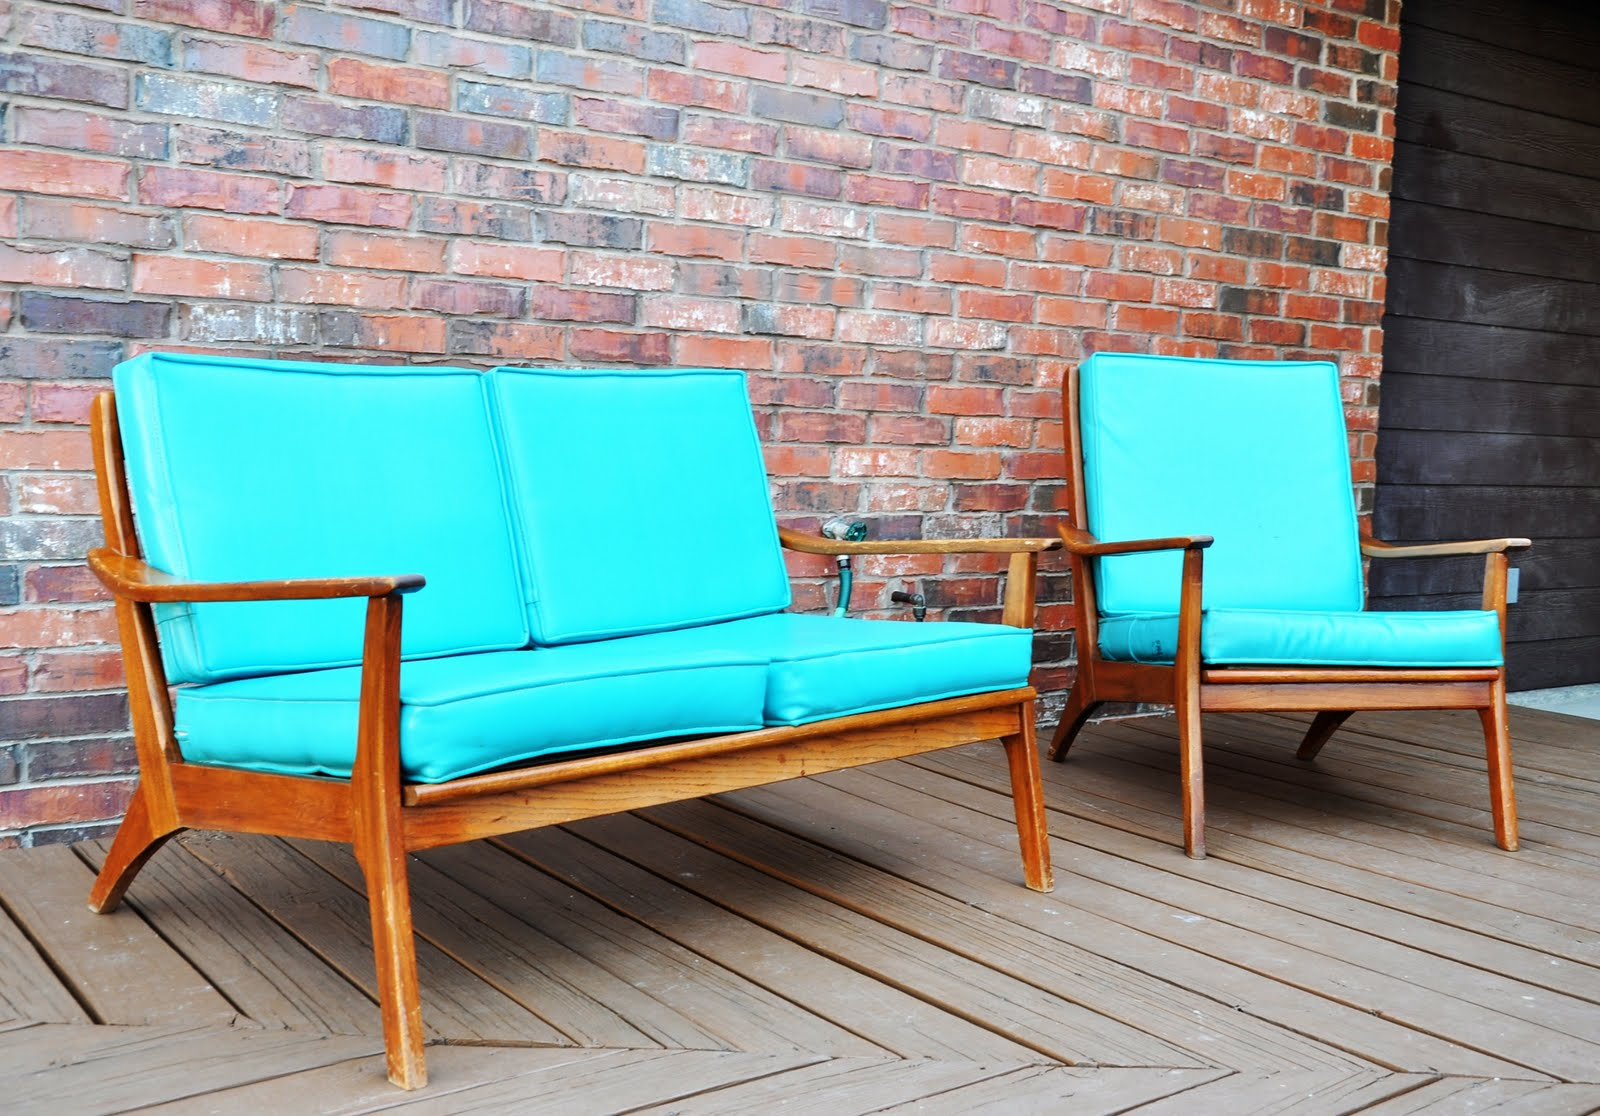 Sarah 39 s loves thrifting thursdays retro patio furniture for Retro outdoor furniture